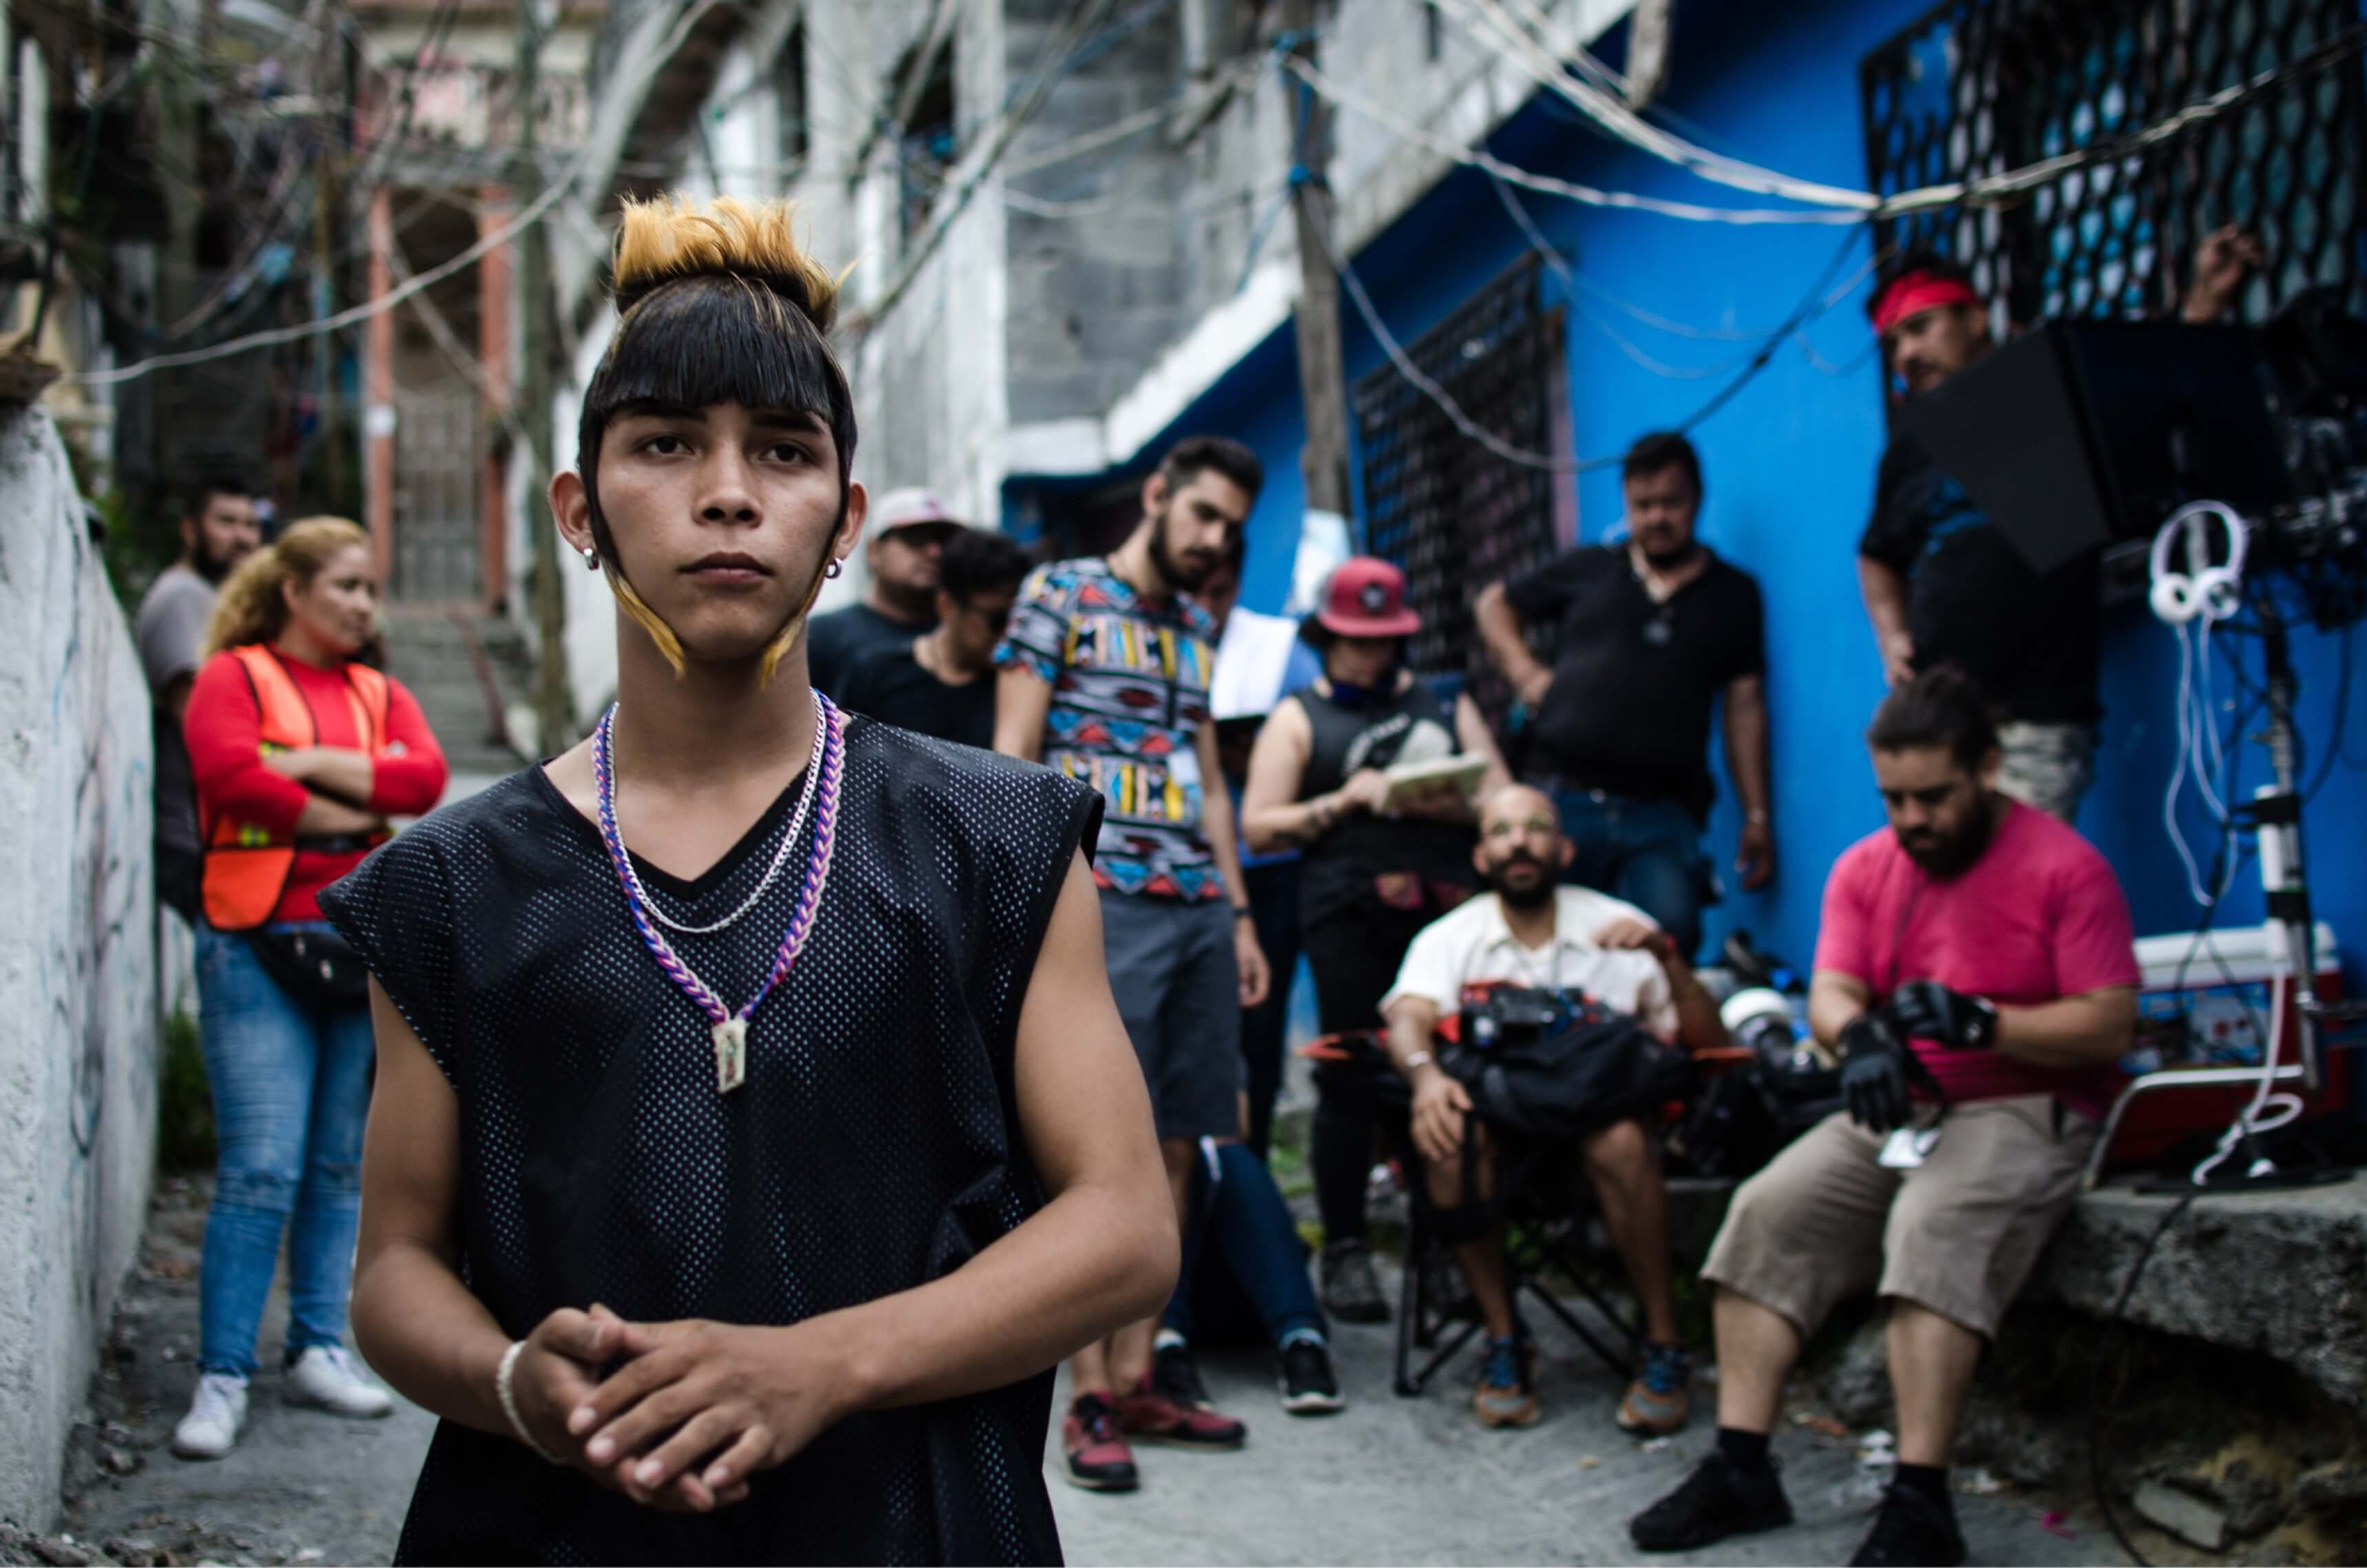 Juan Daniel Garcia Treviño in costume as Ulises, with his signature gelled hairstyle. He stands in a Monterrey alleyway with the film's crew behind him.